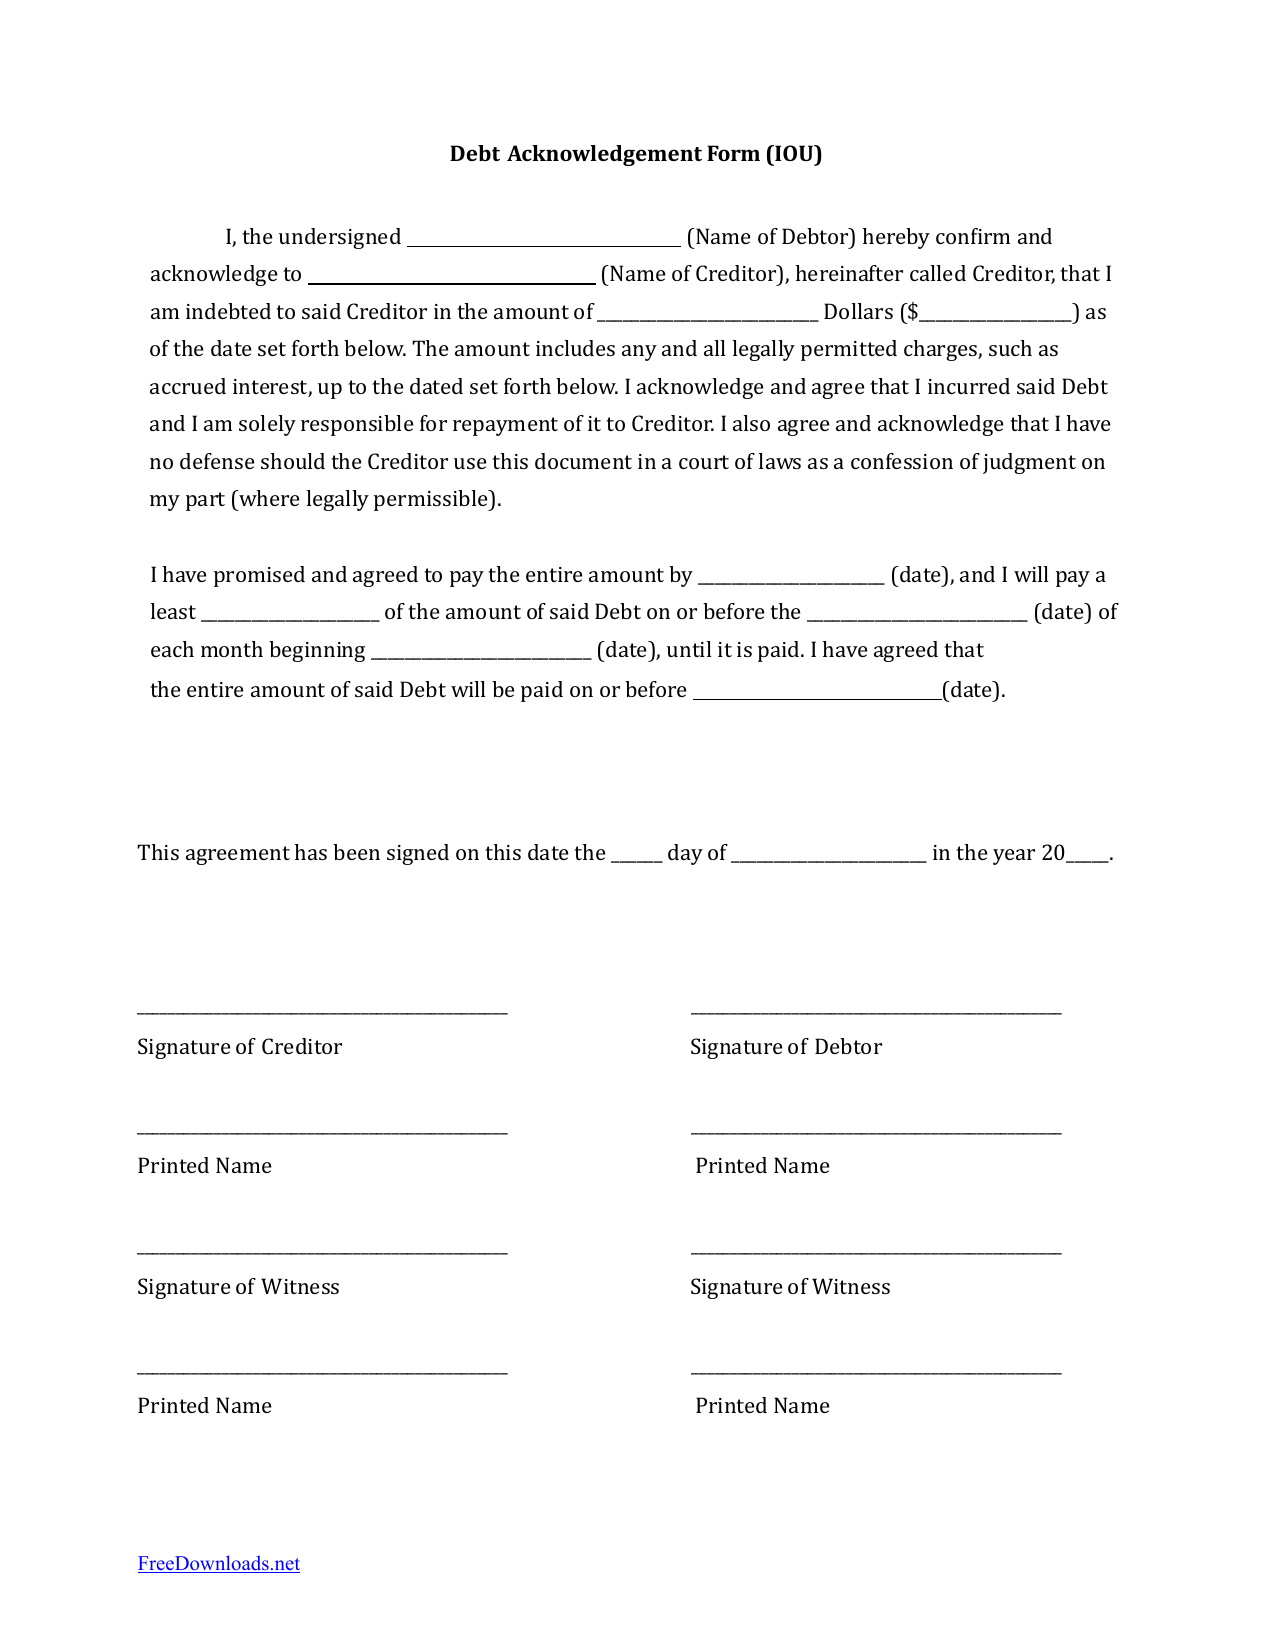 download iou i owe you debt acknowledgment form pdf rtf word